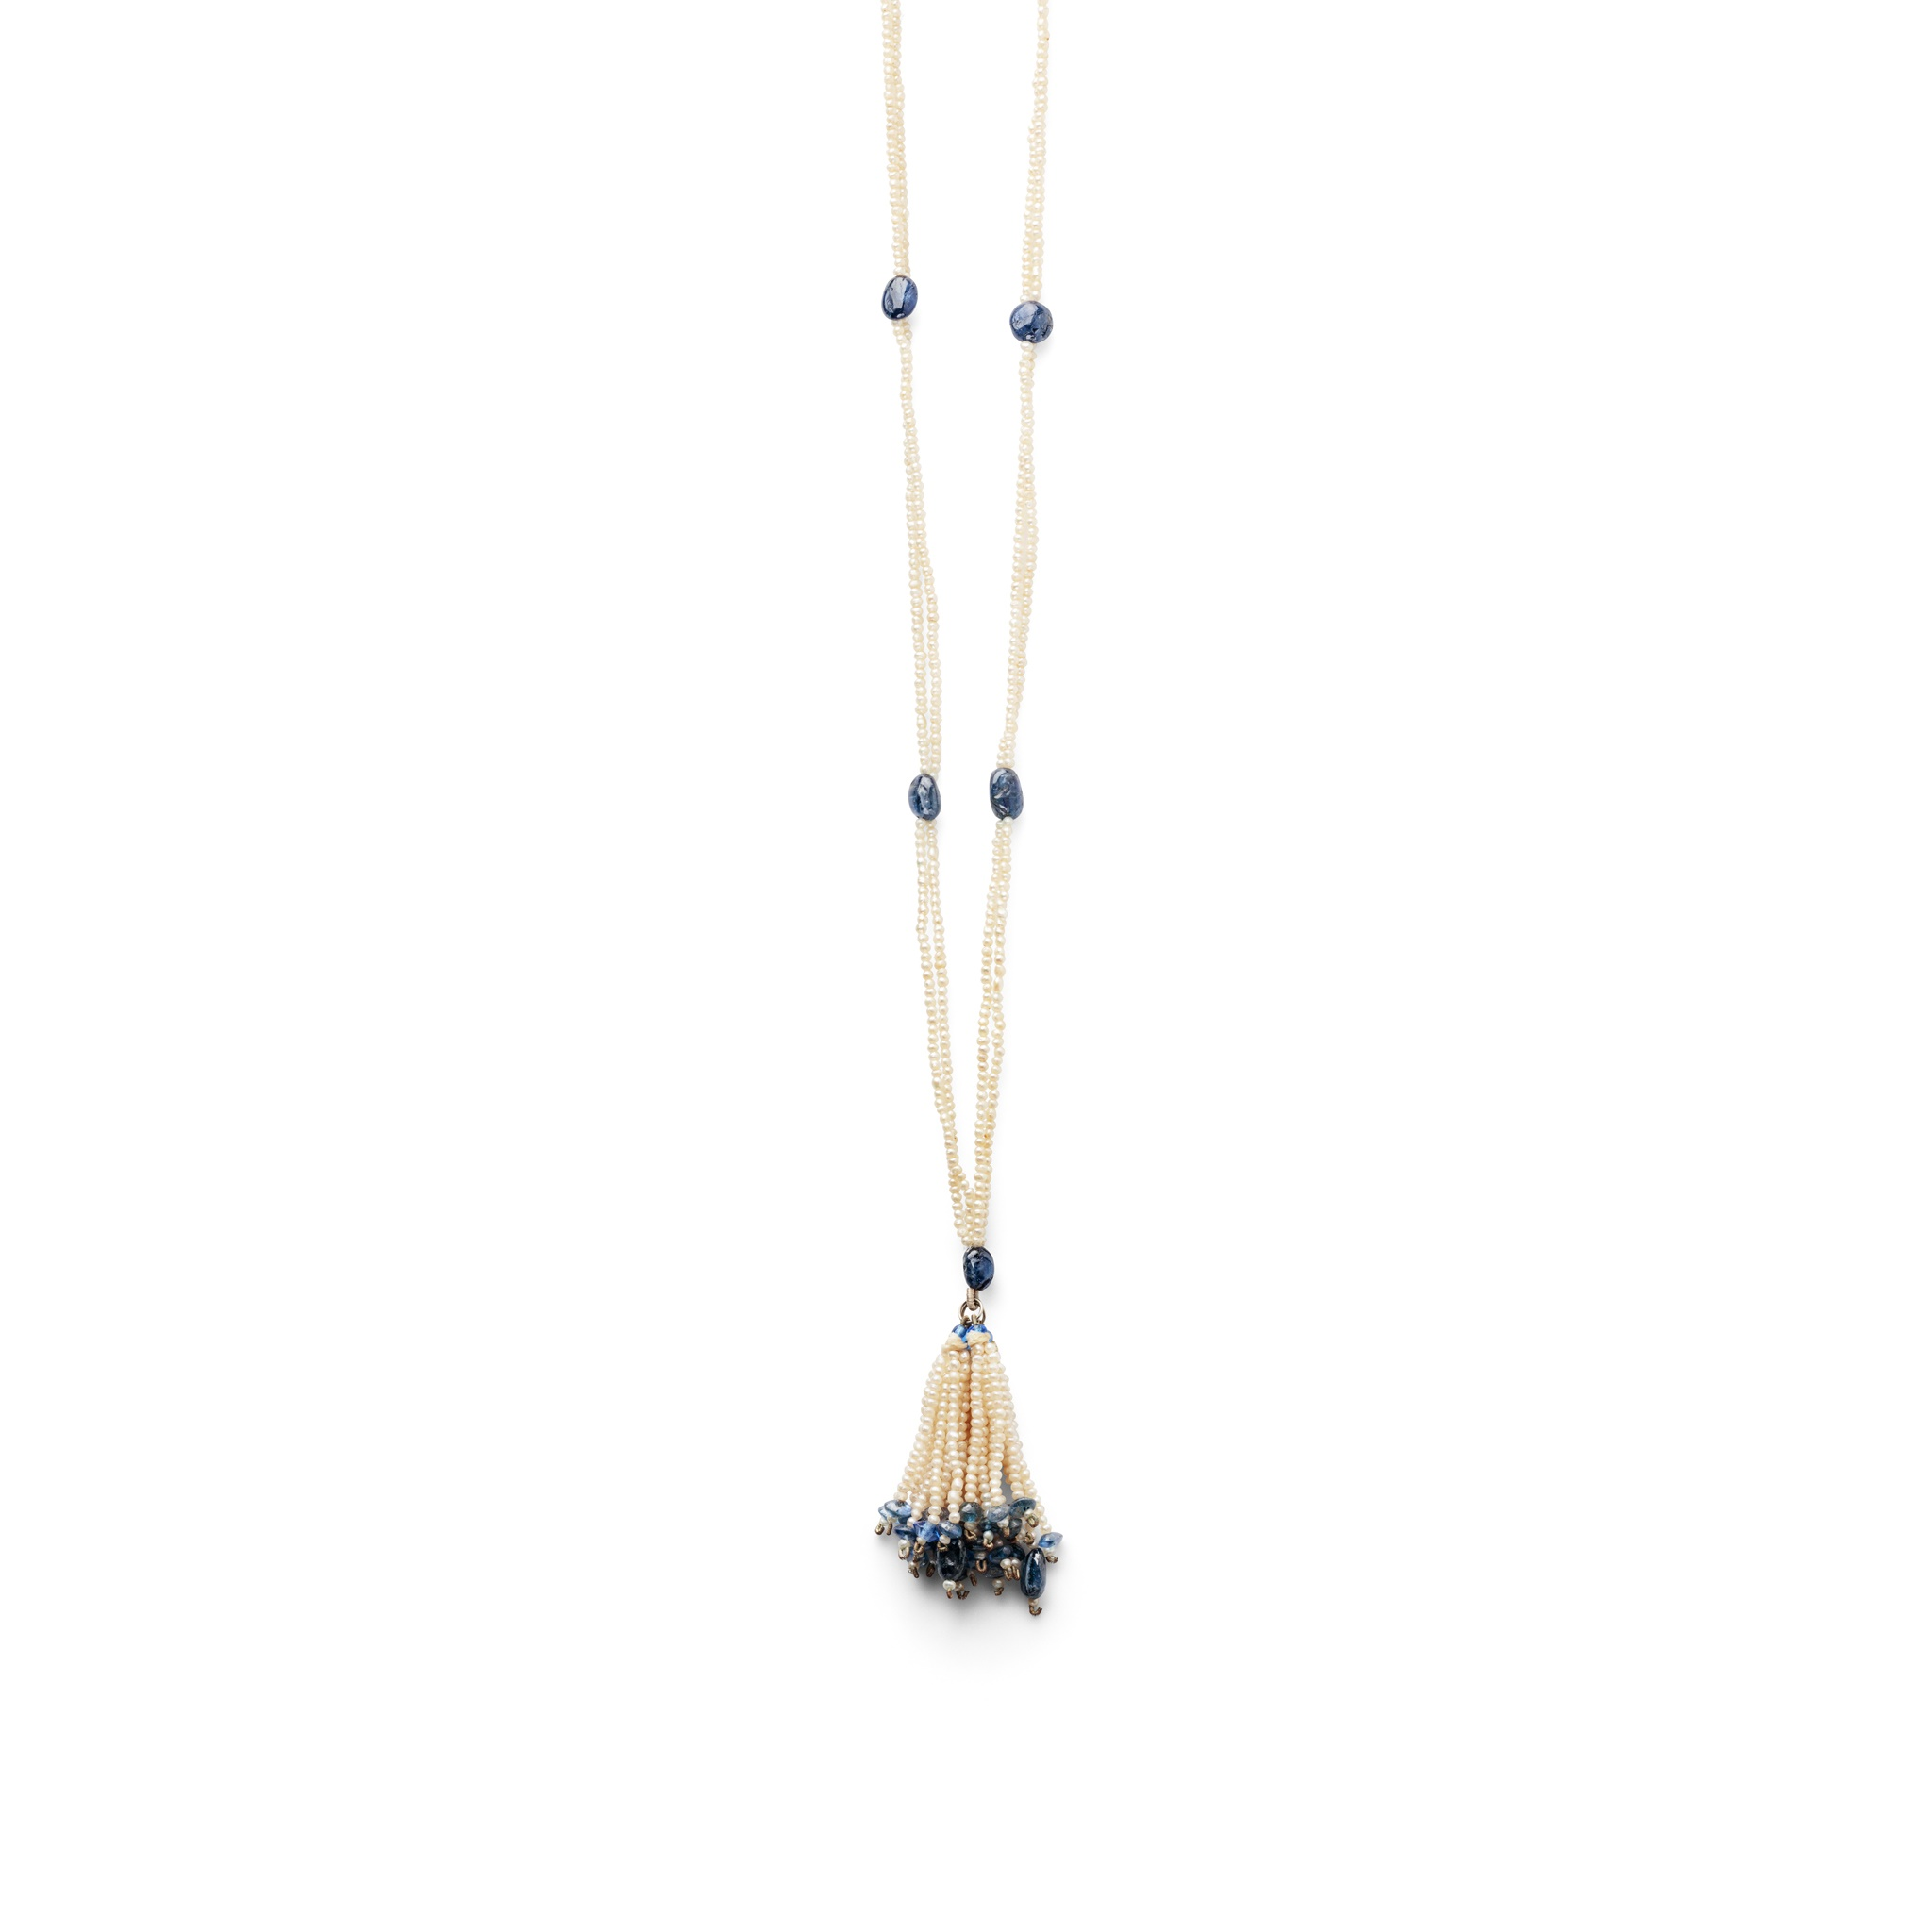 A seed pearl and sapphire bead sautoir Composed of two rows of seed pearls interspersed with